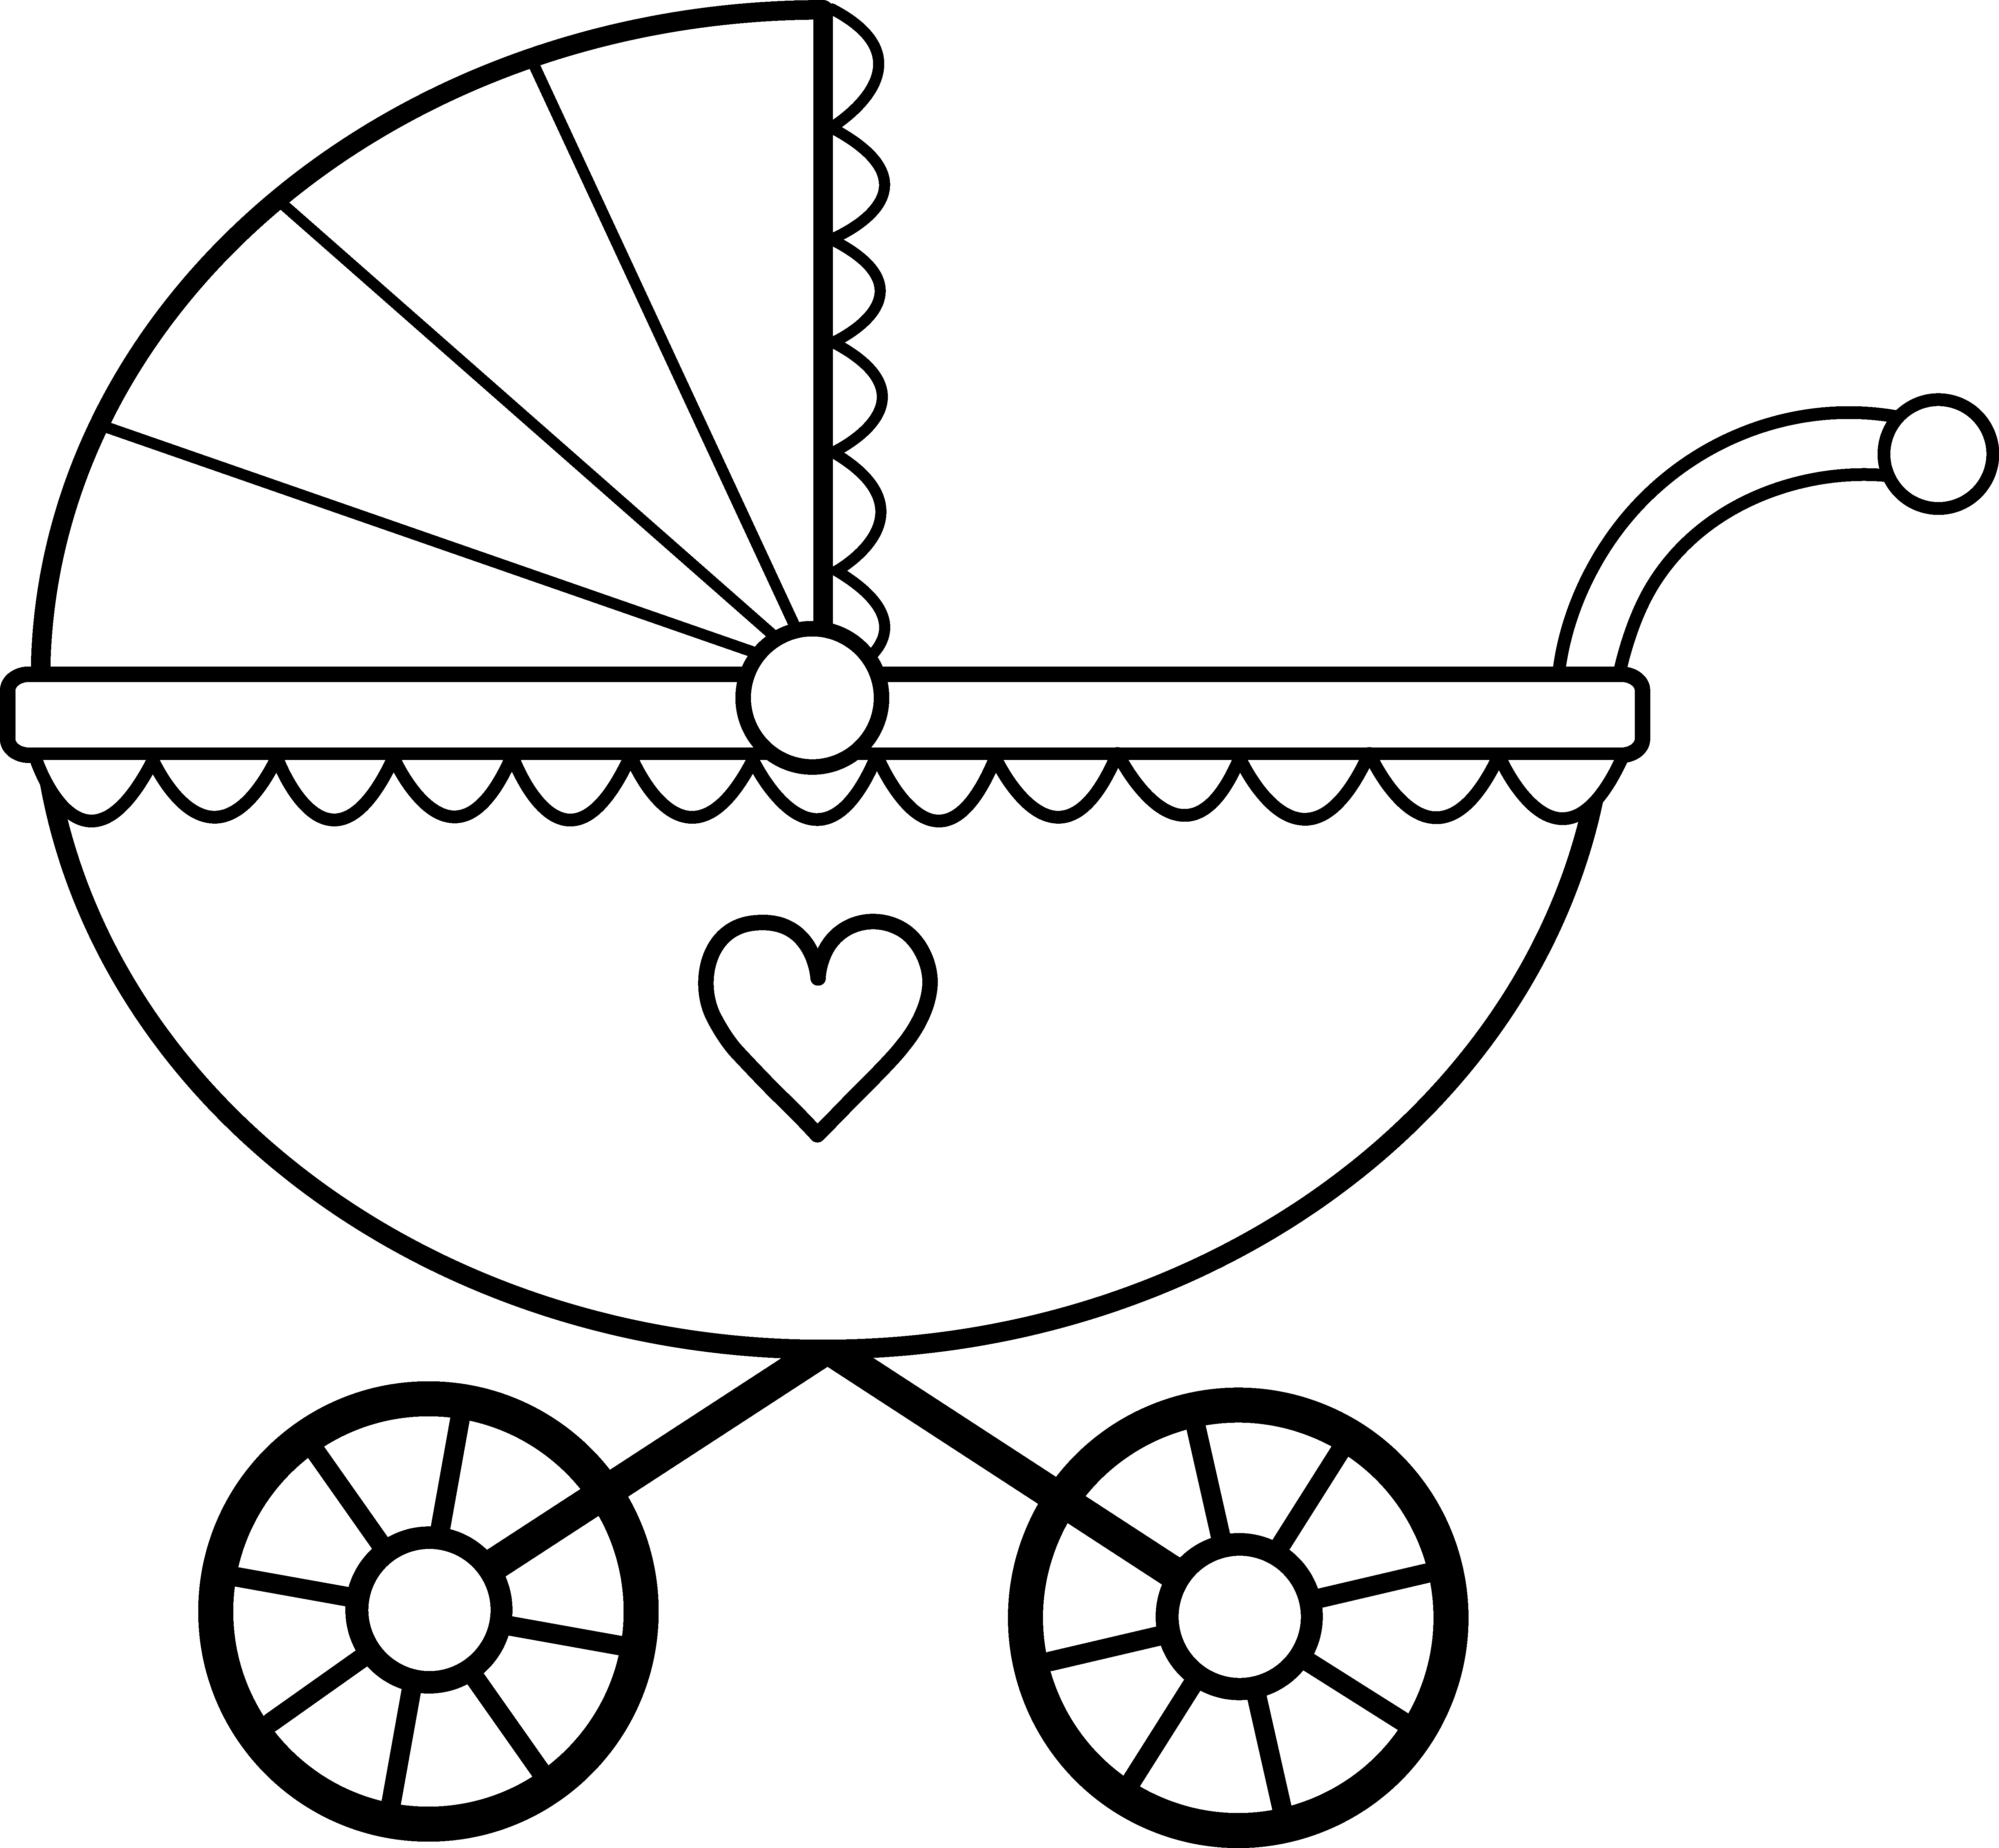 Black and white baby boy with crown clipart svg download Happy 2014! | Pinterest | Baby strollers, Babies and Template svg download